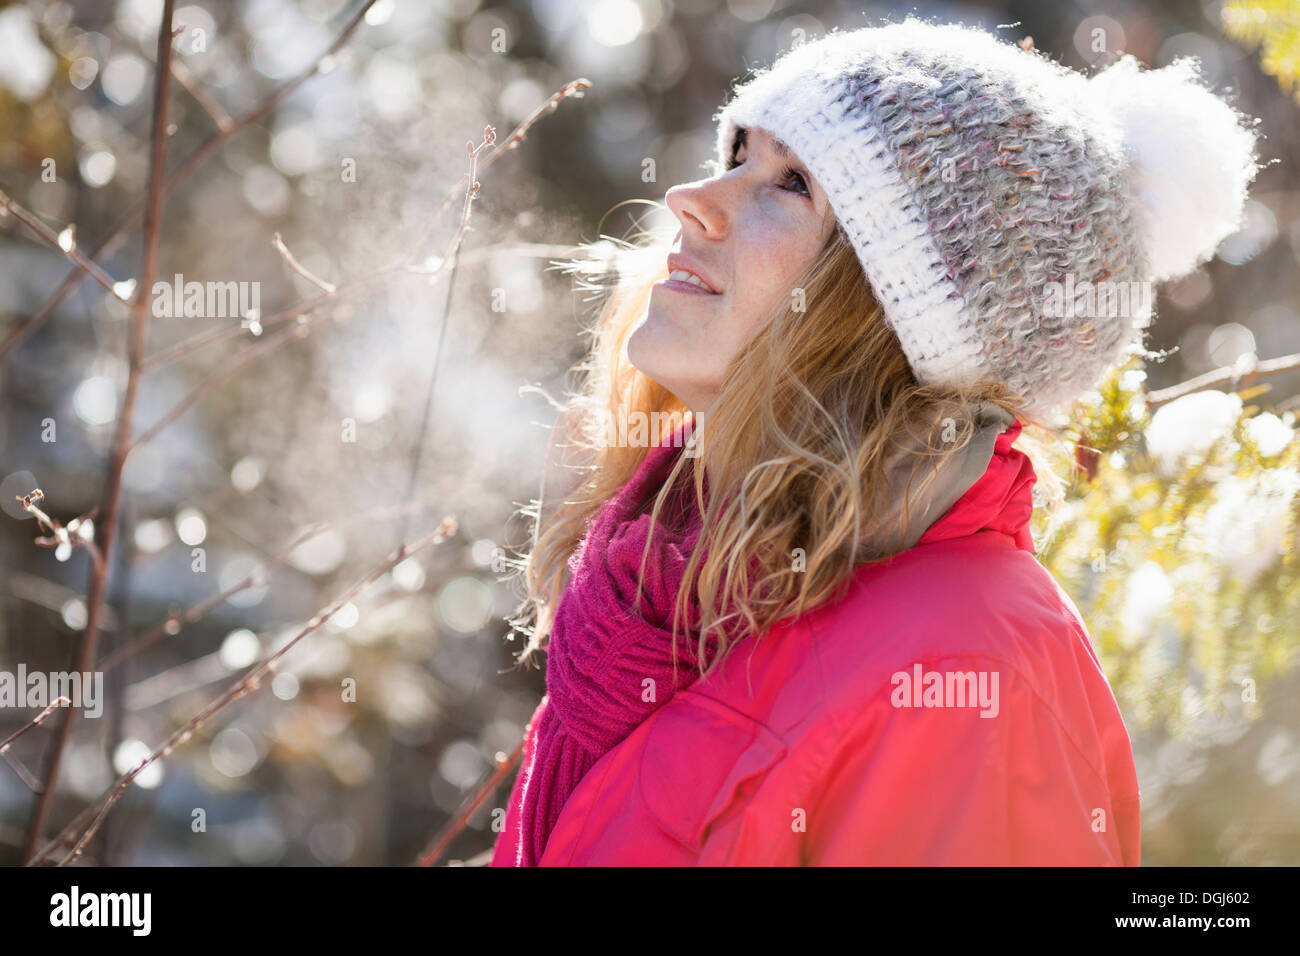 Young adult woman among snow-covered tree branches - Stock Image